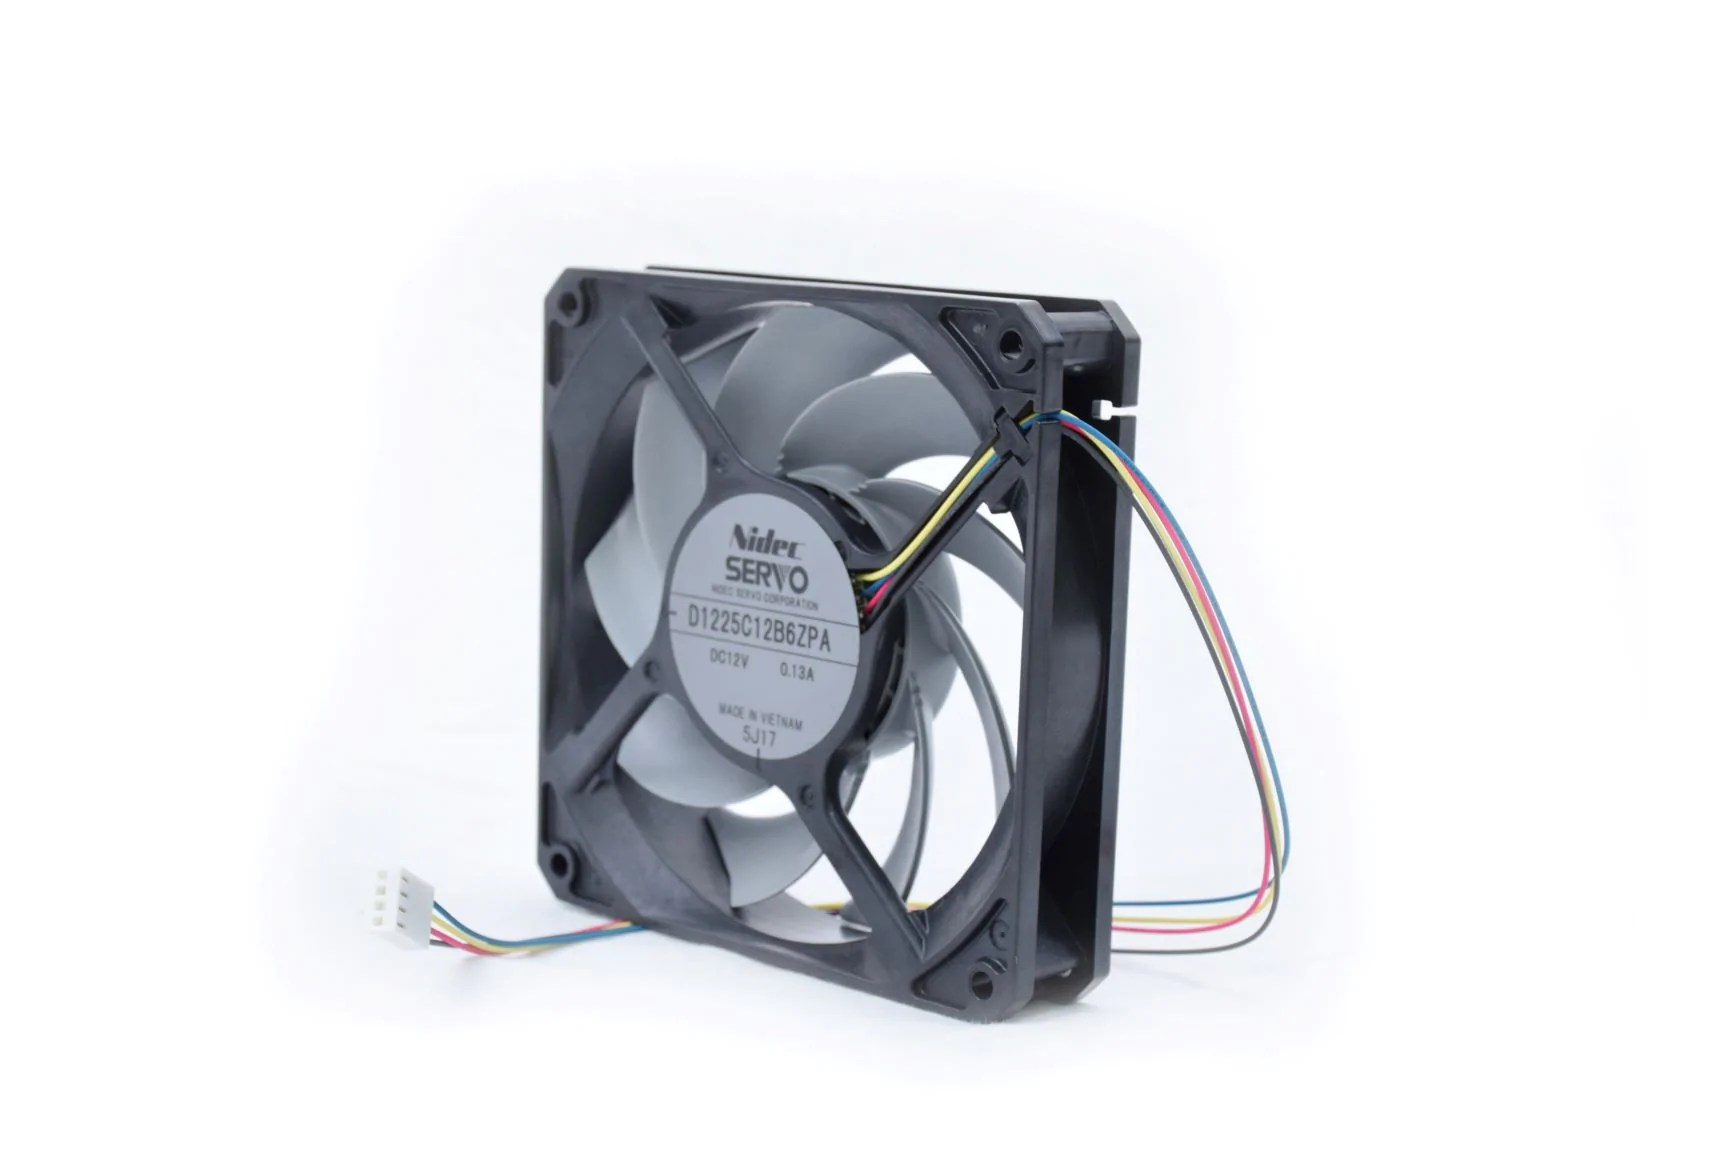 hight resolution of gentletyphoon 120x120x25mm silent case fan series d1225c12b